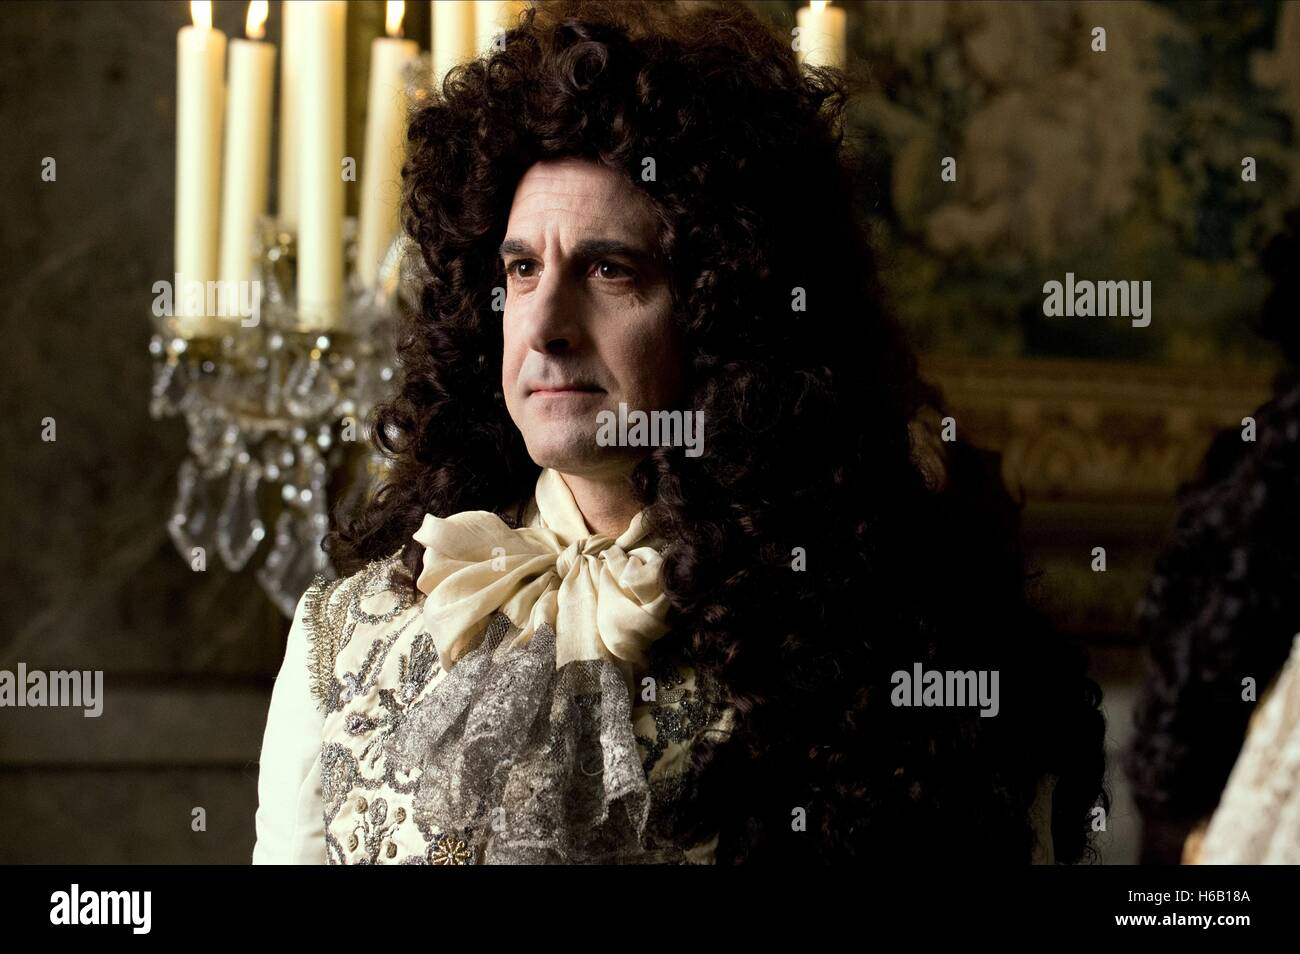 STANLEY TUCCI A LITTLE CHAOS (2014 Stock Photo: 124403002